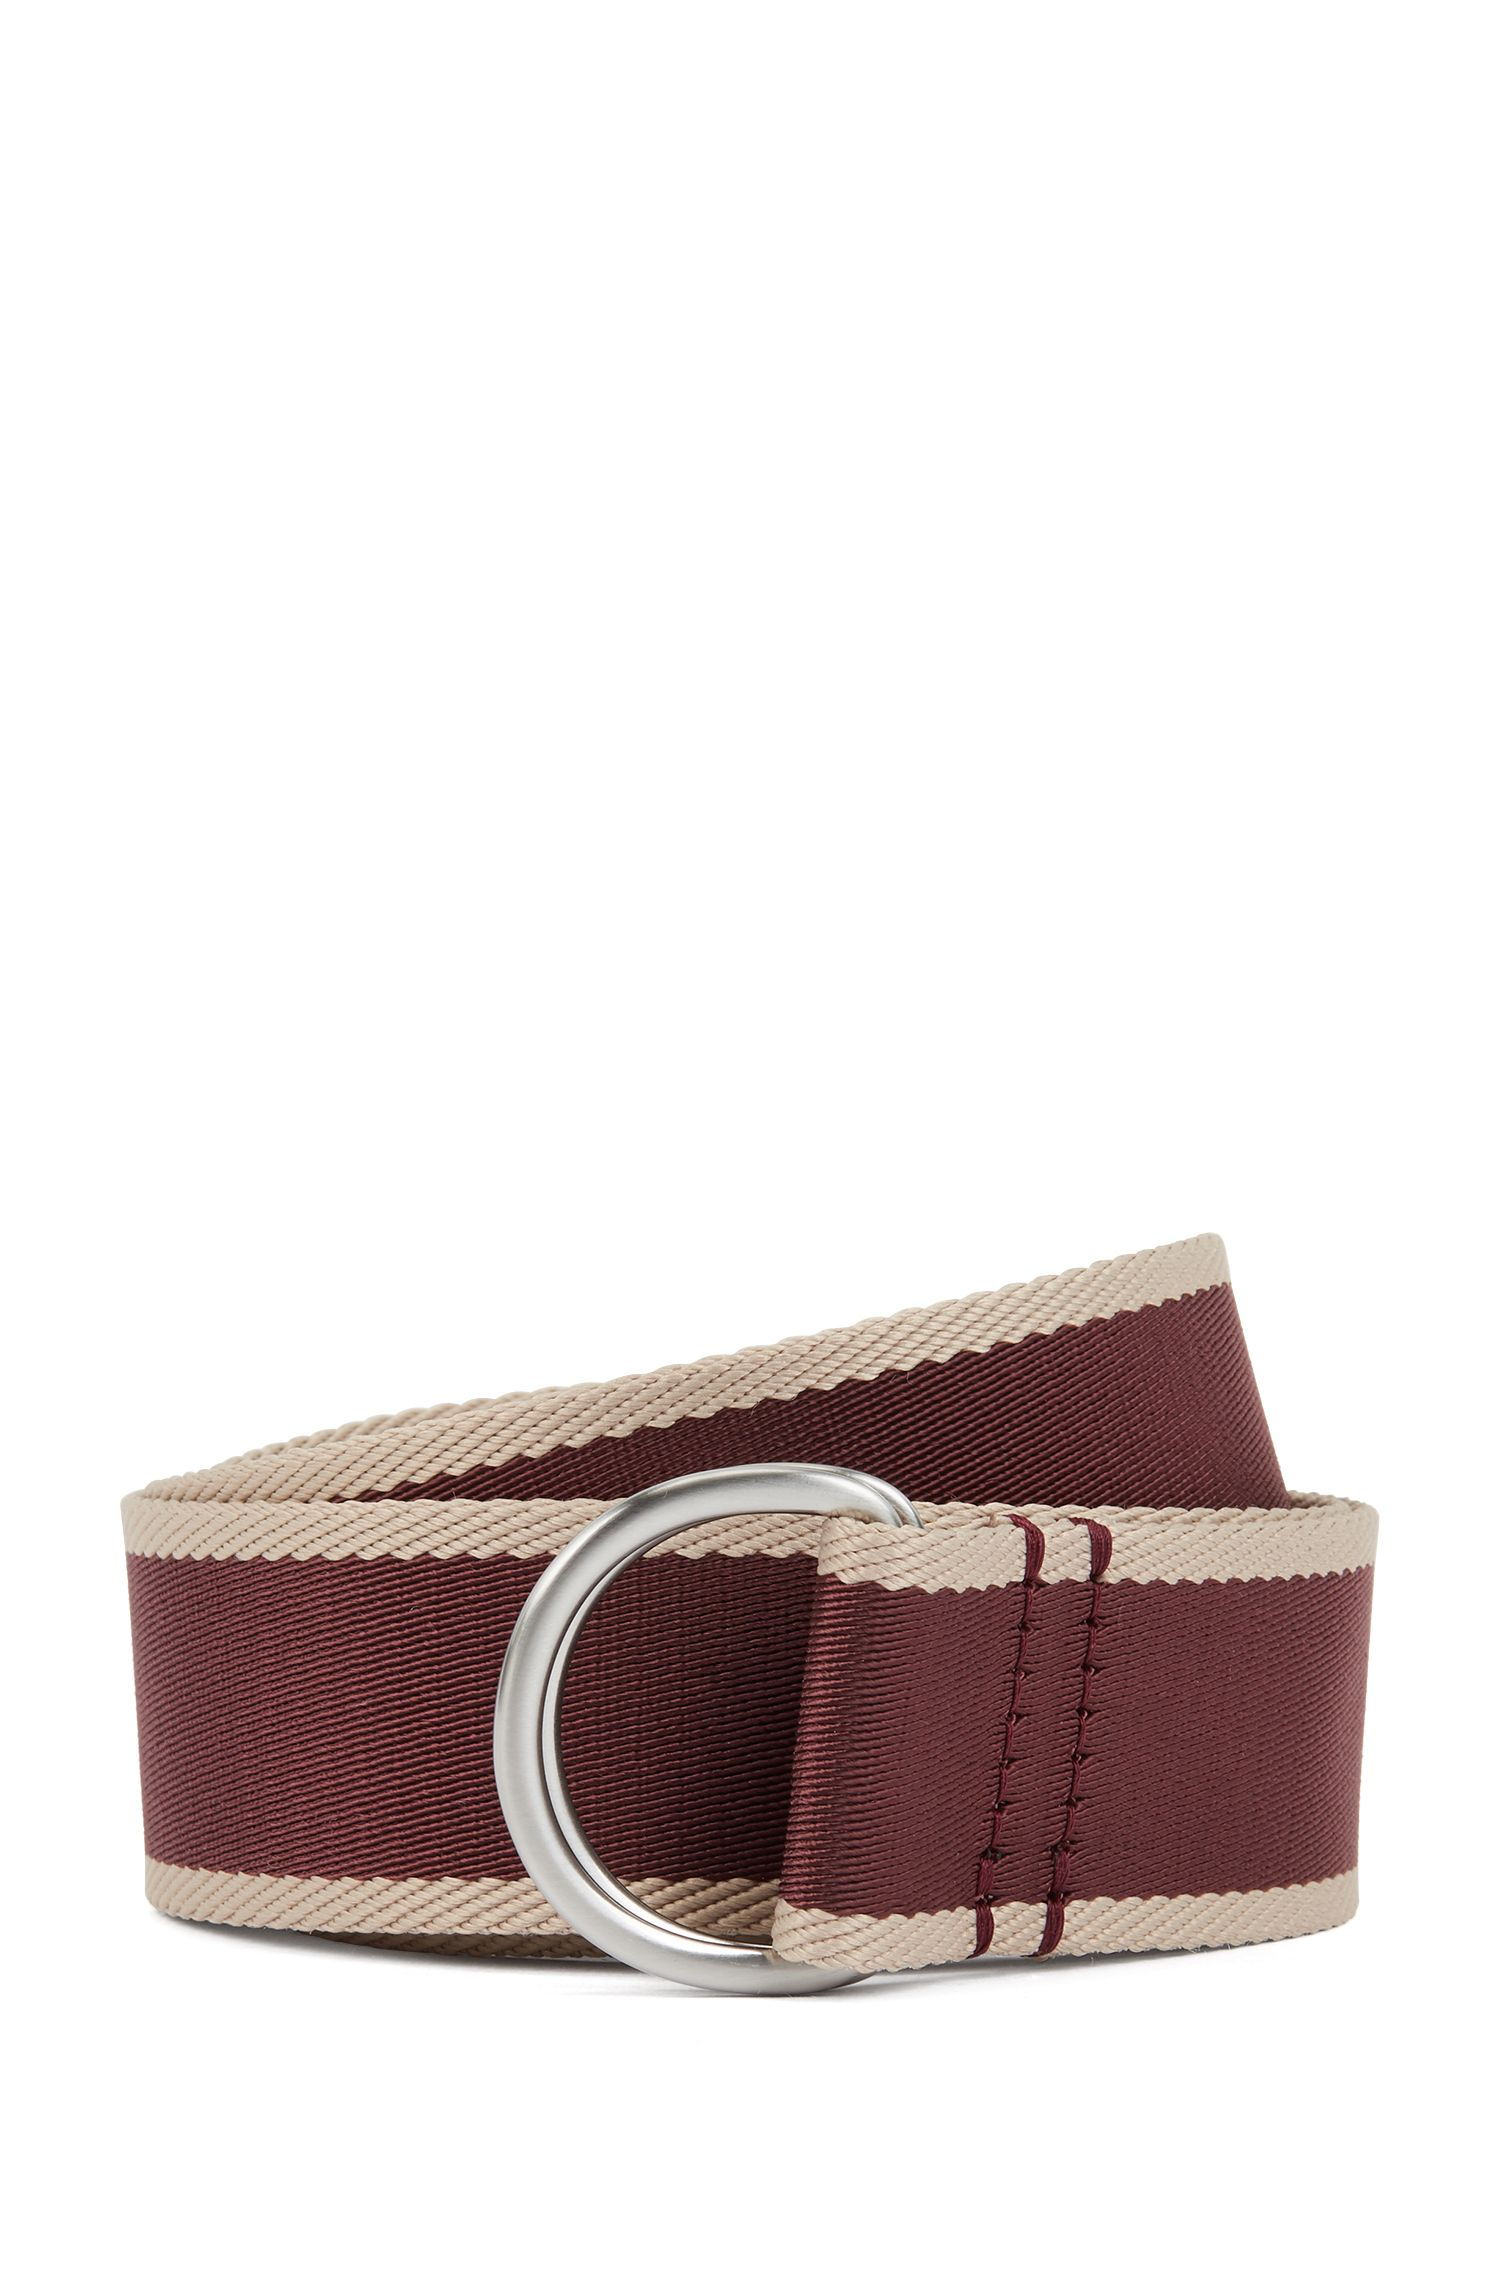 Two-tone webbing belt with D-ring buckle, Rouge sombre